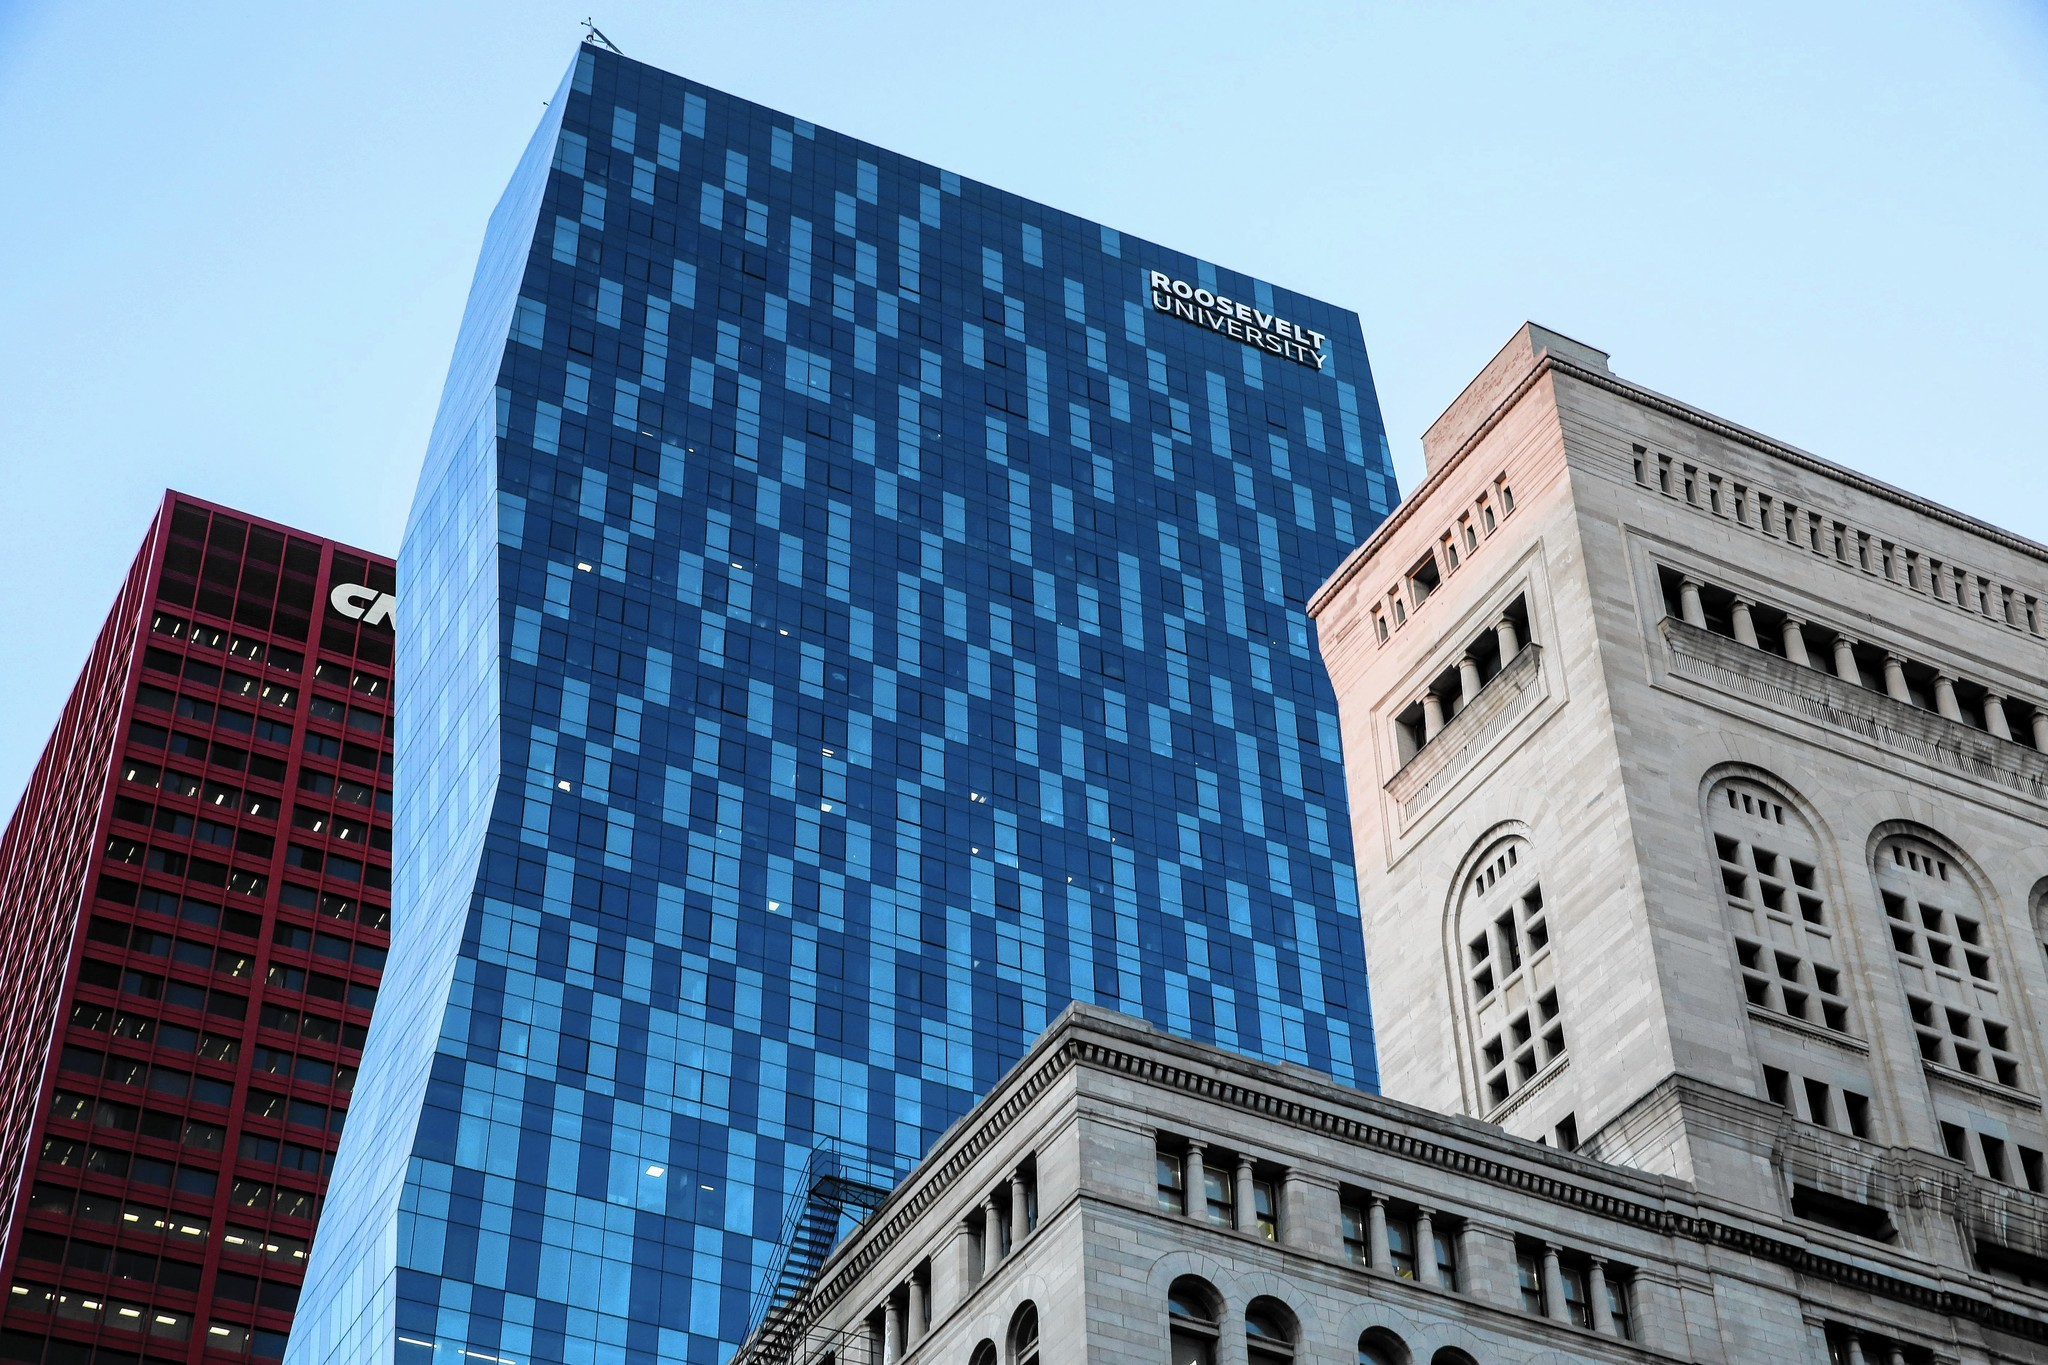 Three Years After Building Skyscraper Roosevelt